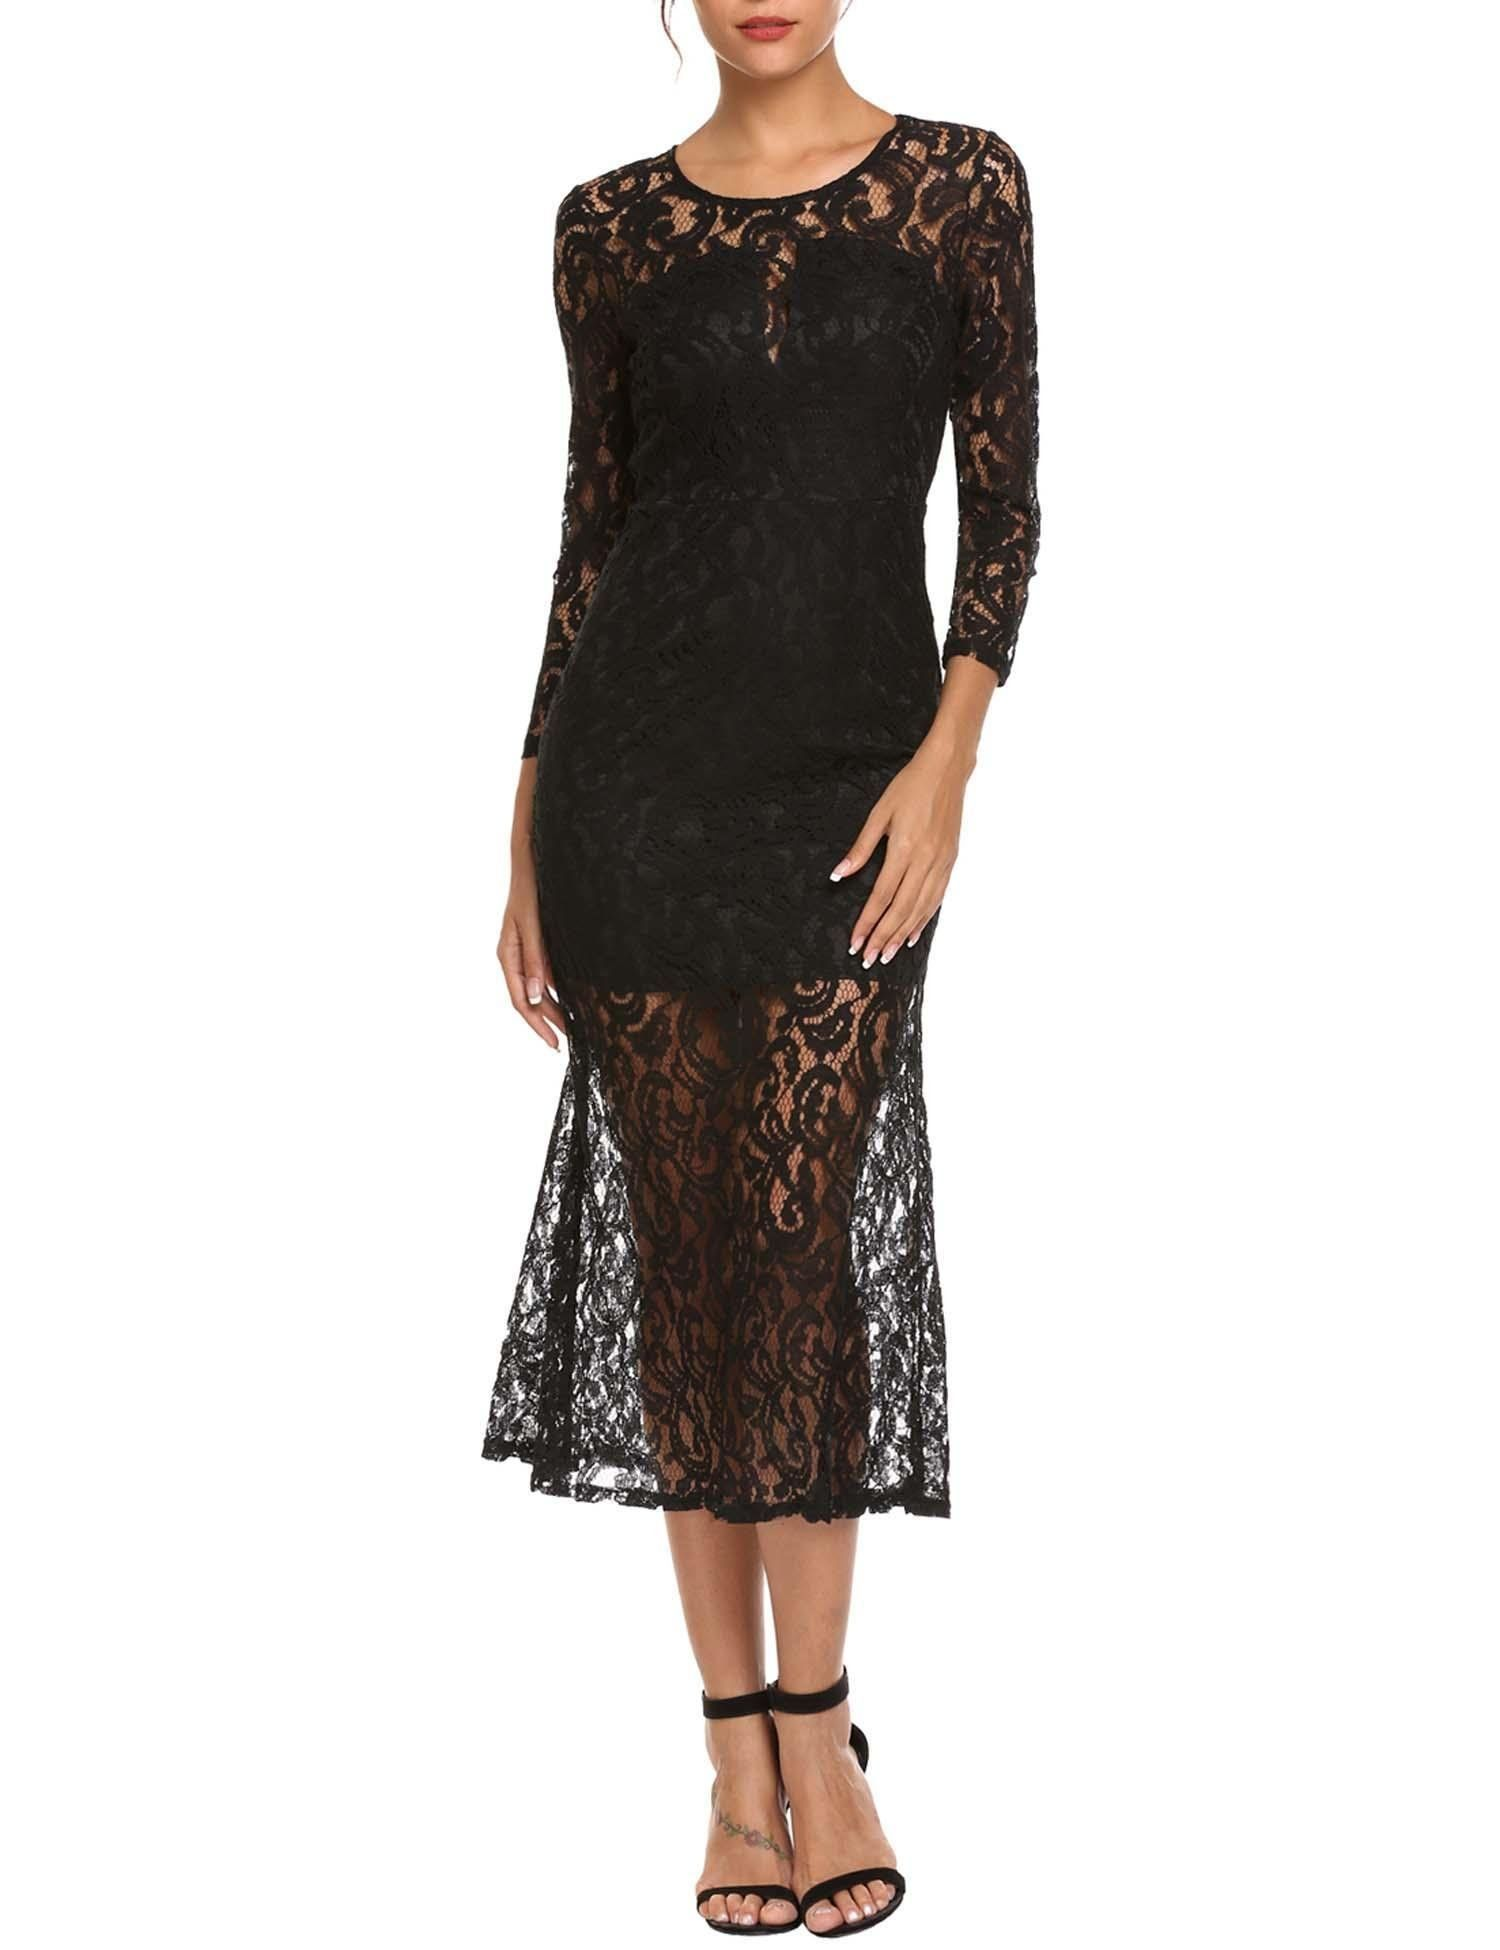 Alofa women sexy long sleeve lace fitted cut out party prom dress